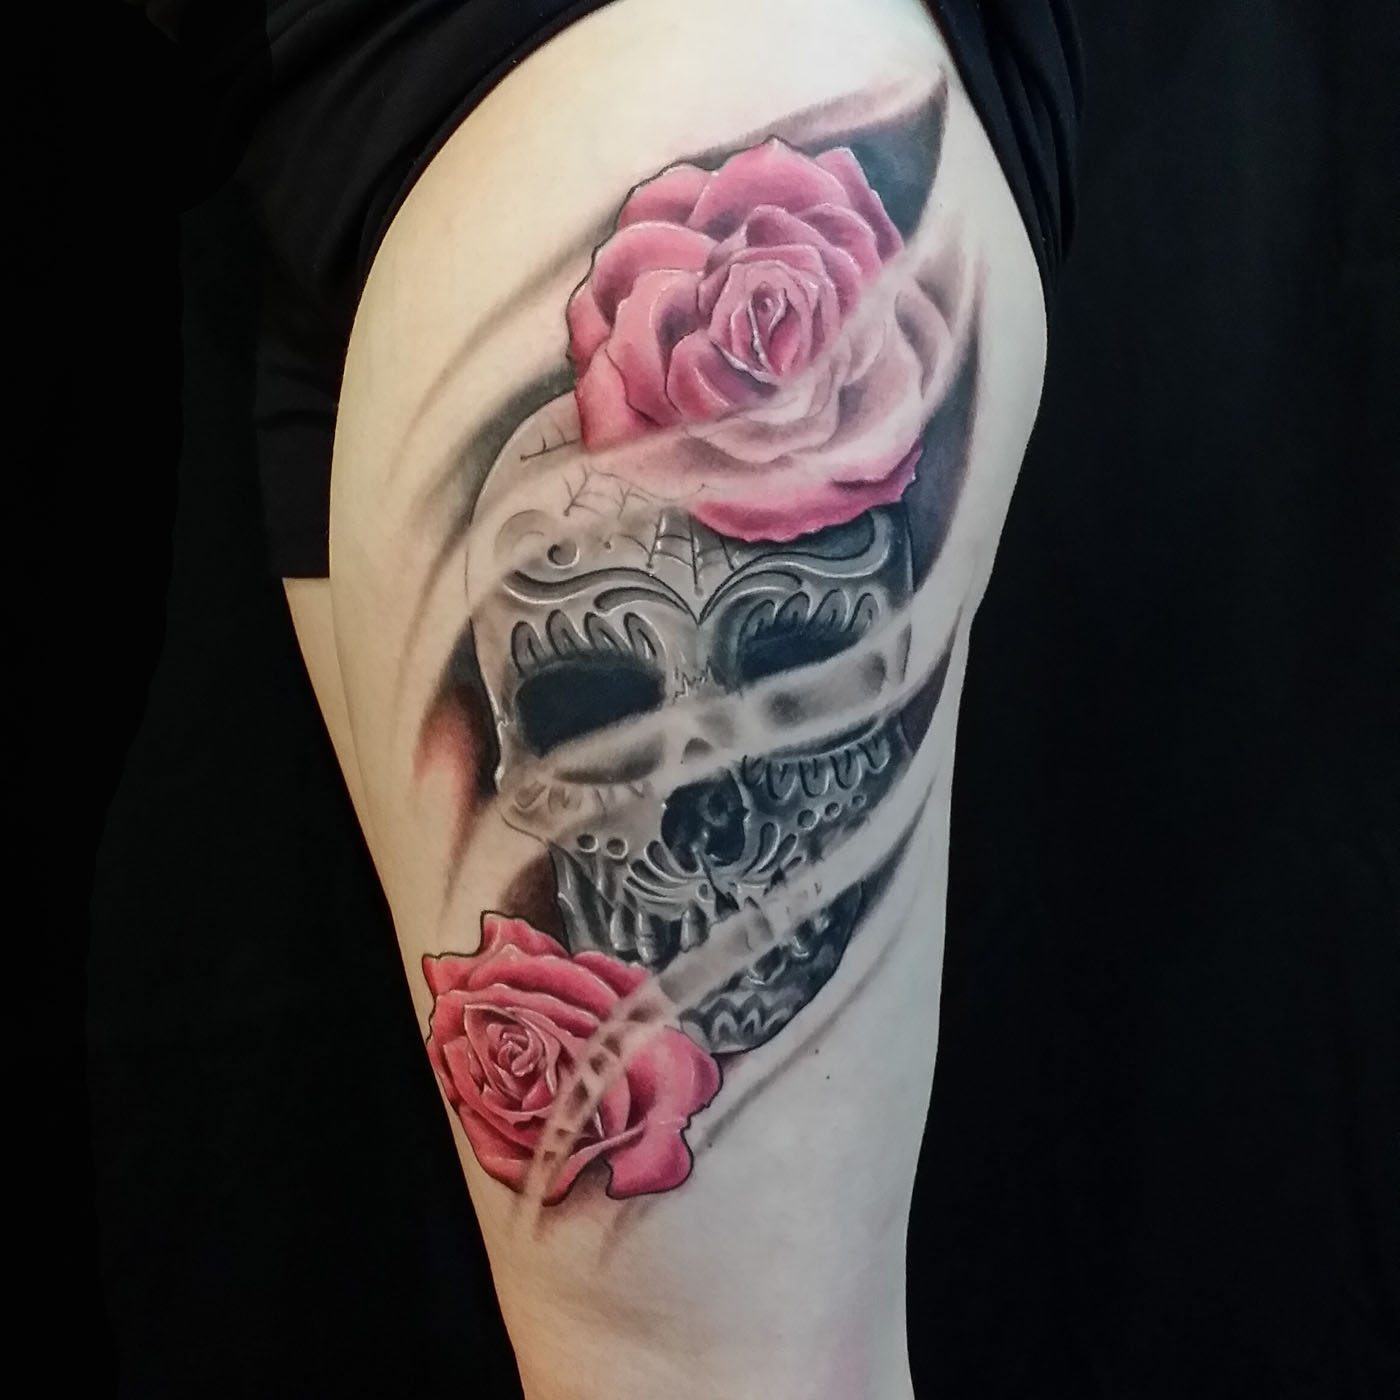 Catrina day of the dead flowers tattoo slave to the needle for Day of the dead body jewelry